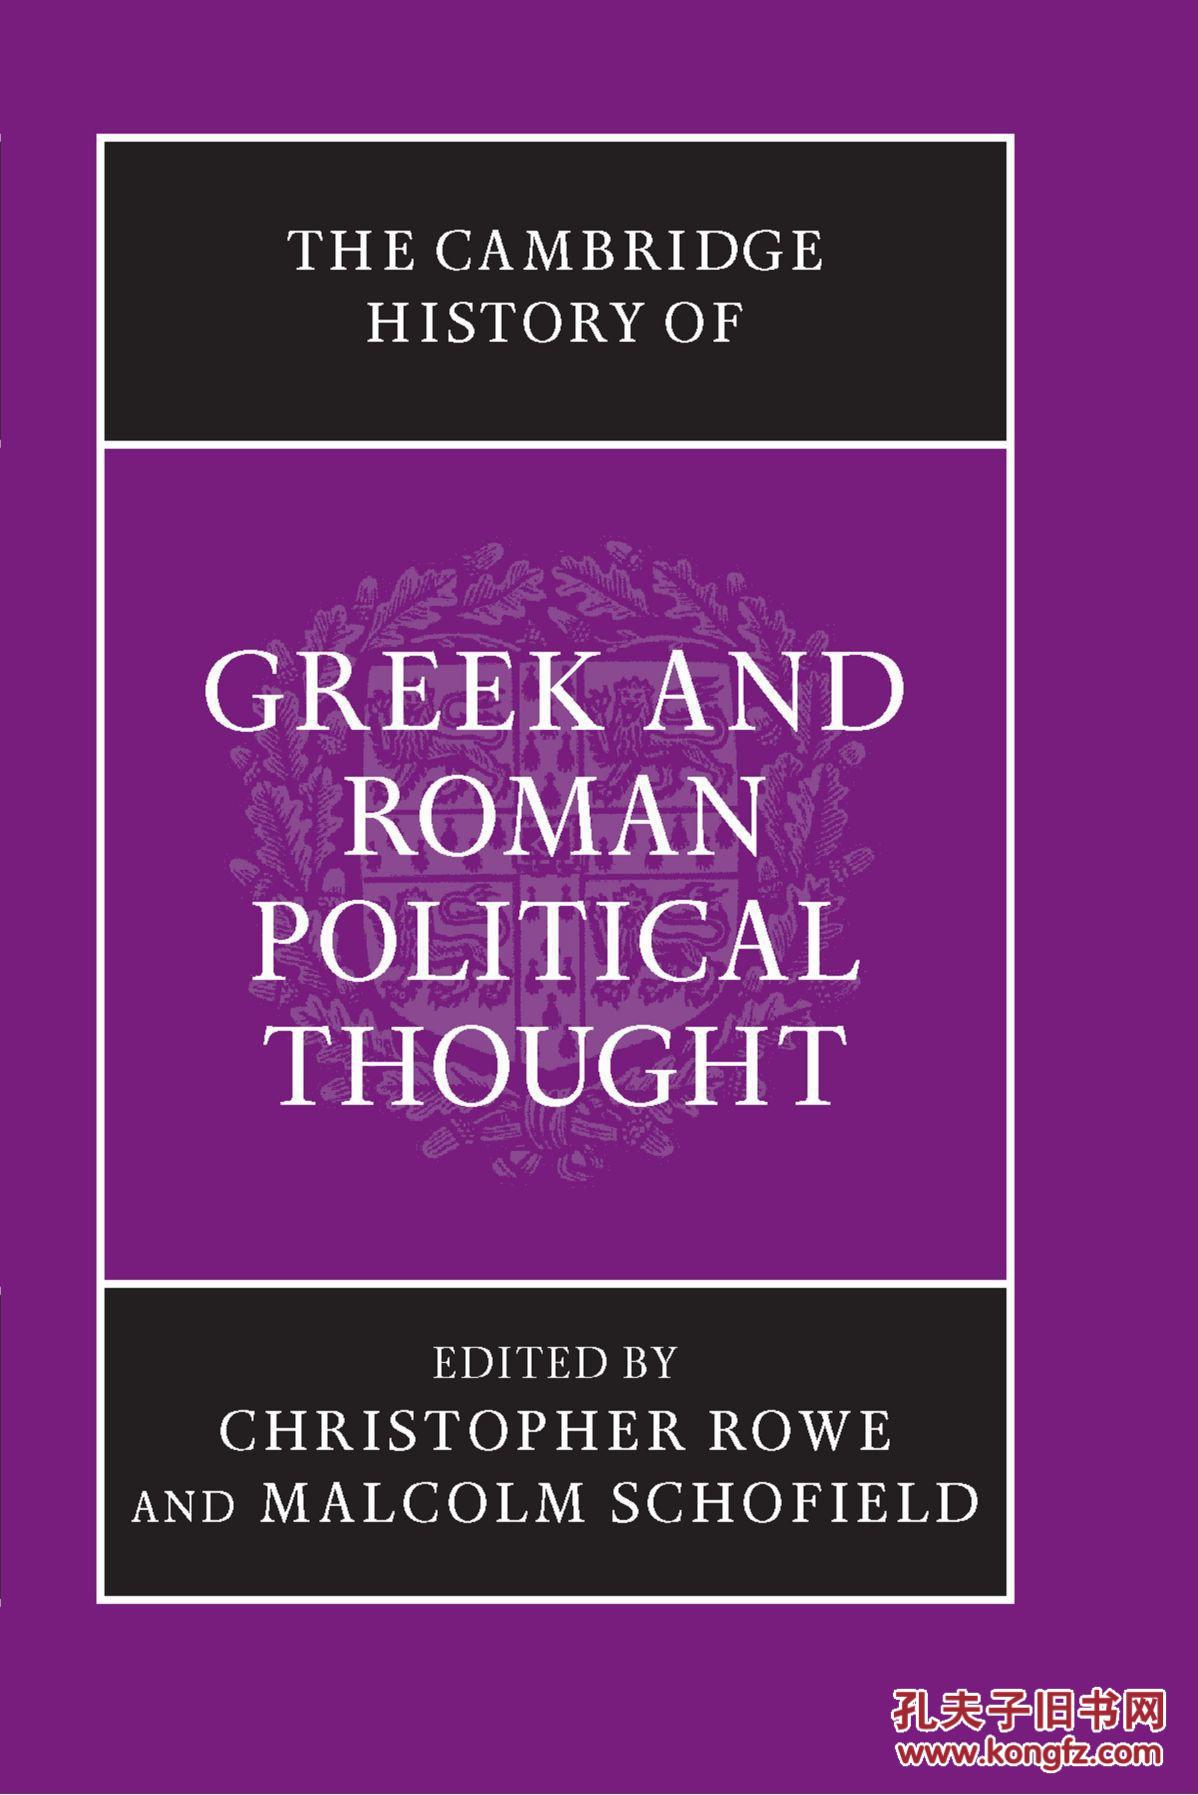 剑桥希腊罗马政治思想史  The Cambridge History of Greek and Roman Political Thought